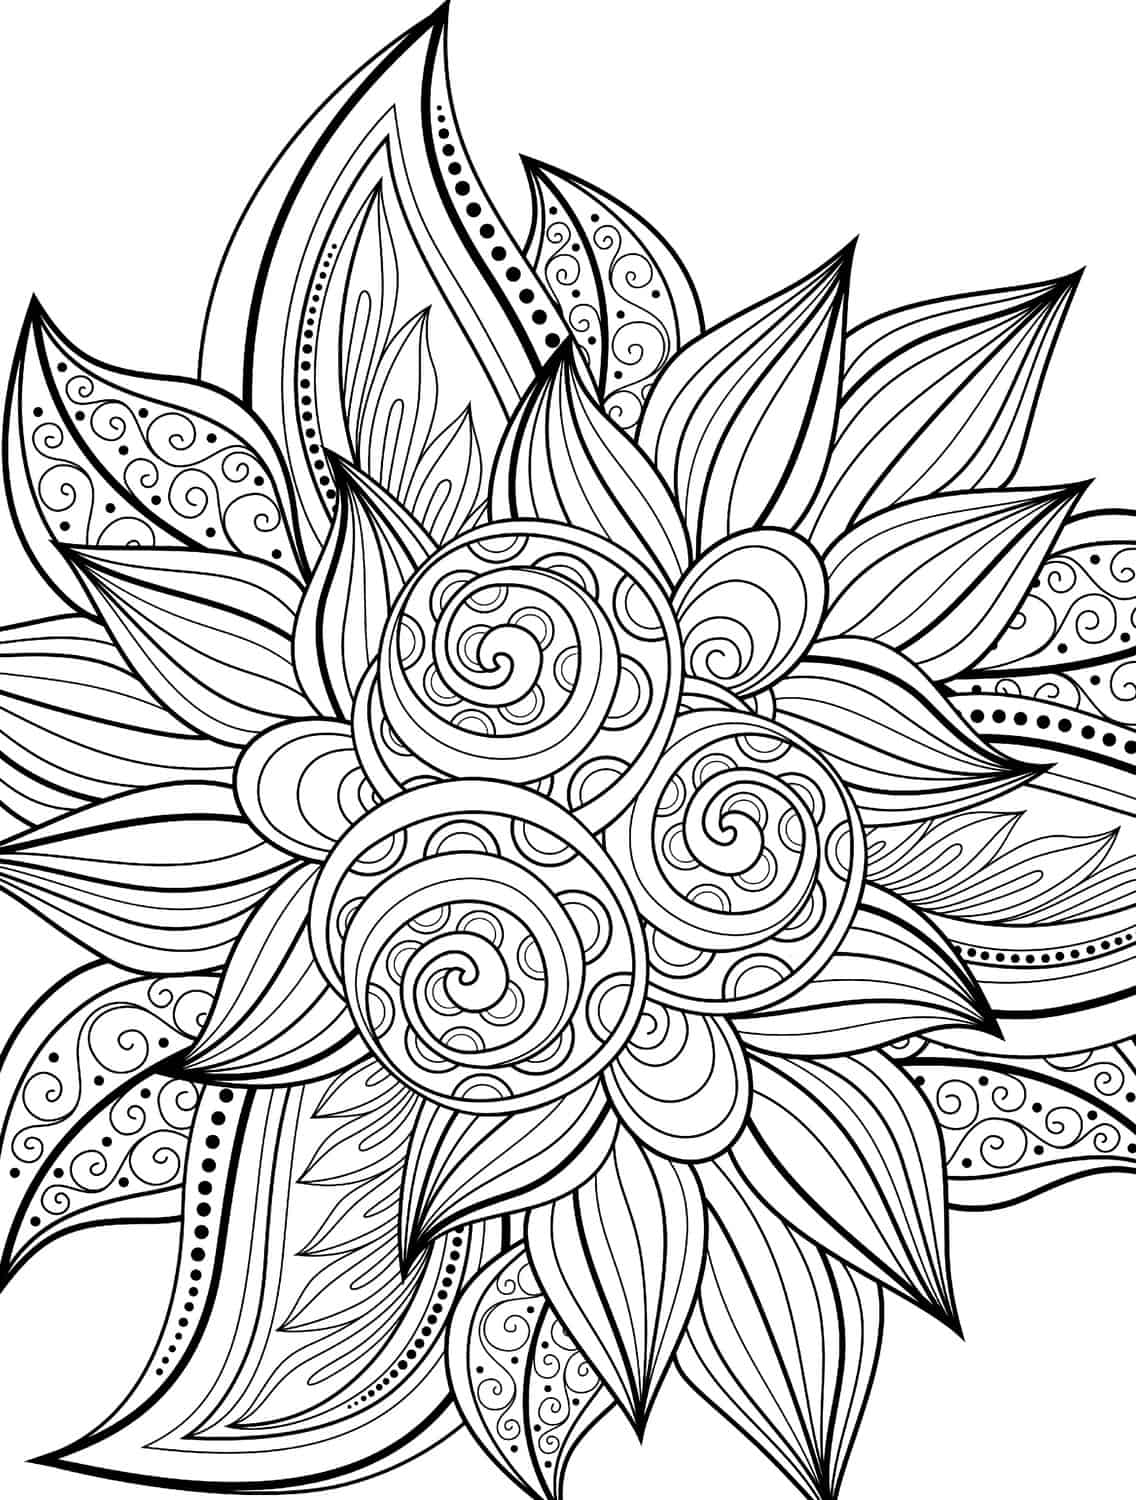 Printable Coloring Pages Adults 100